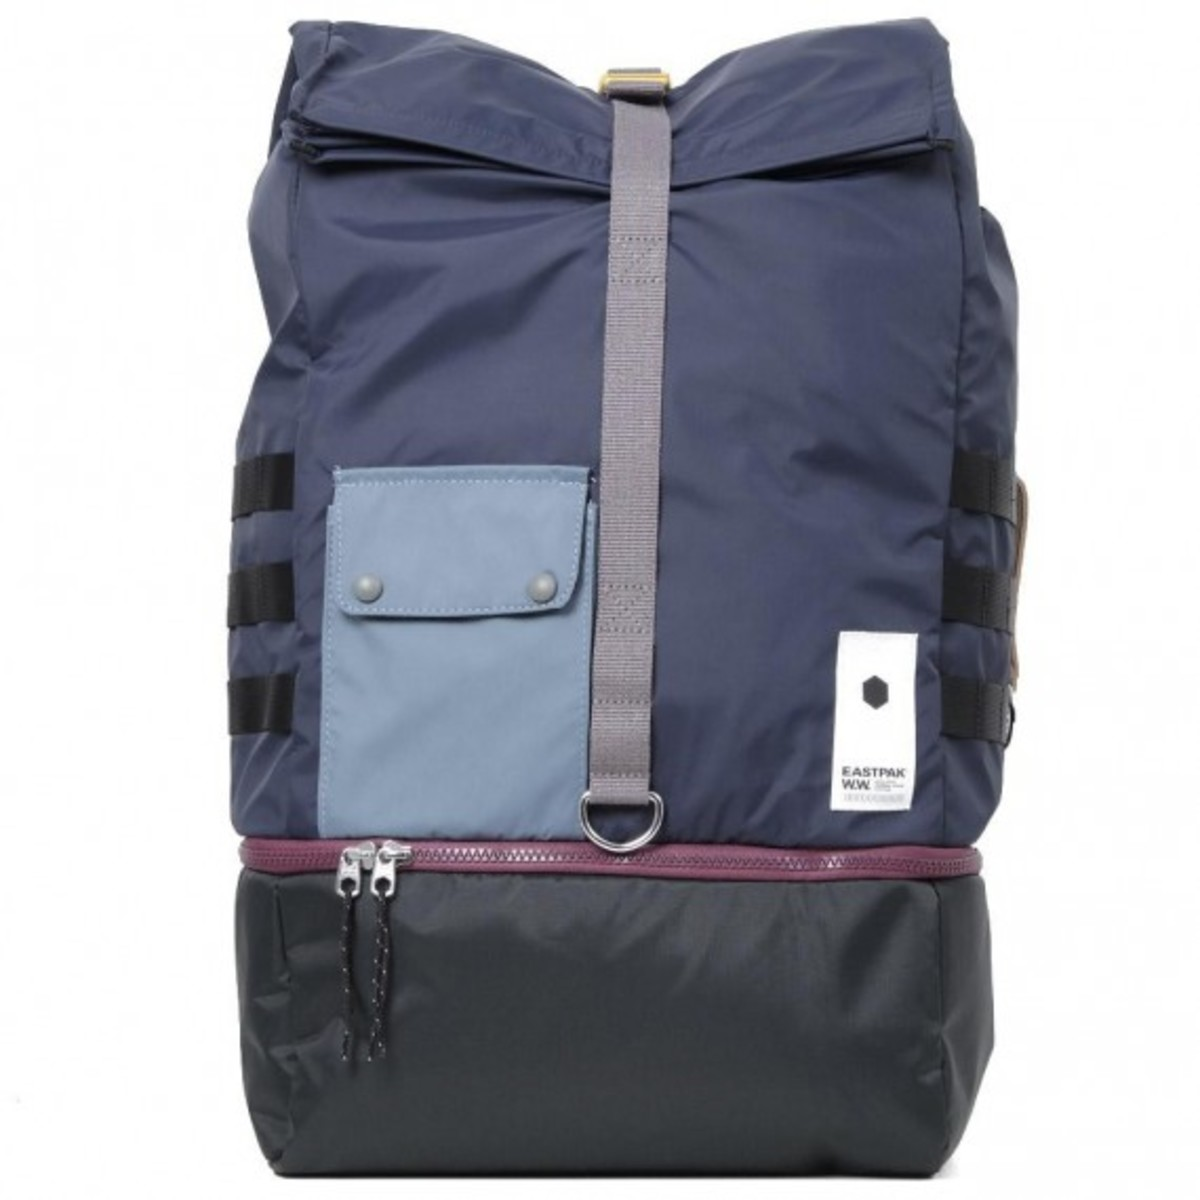 wood-wood-eastpak-collection-available-18